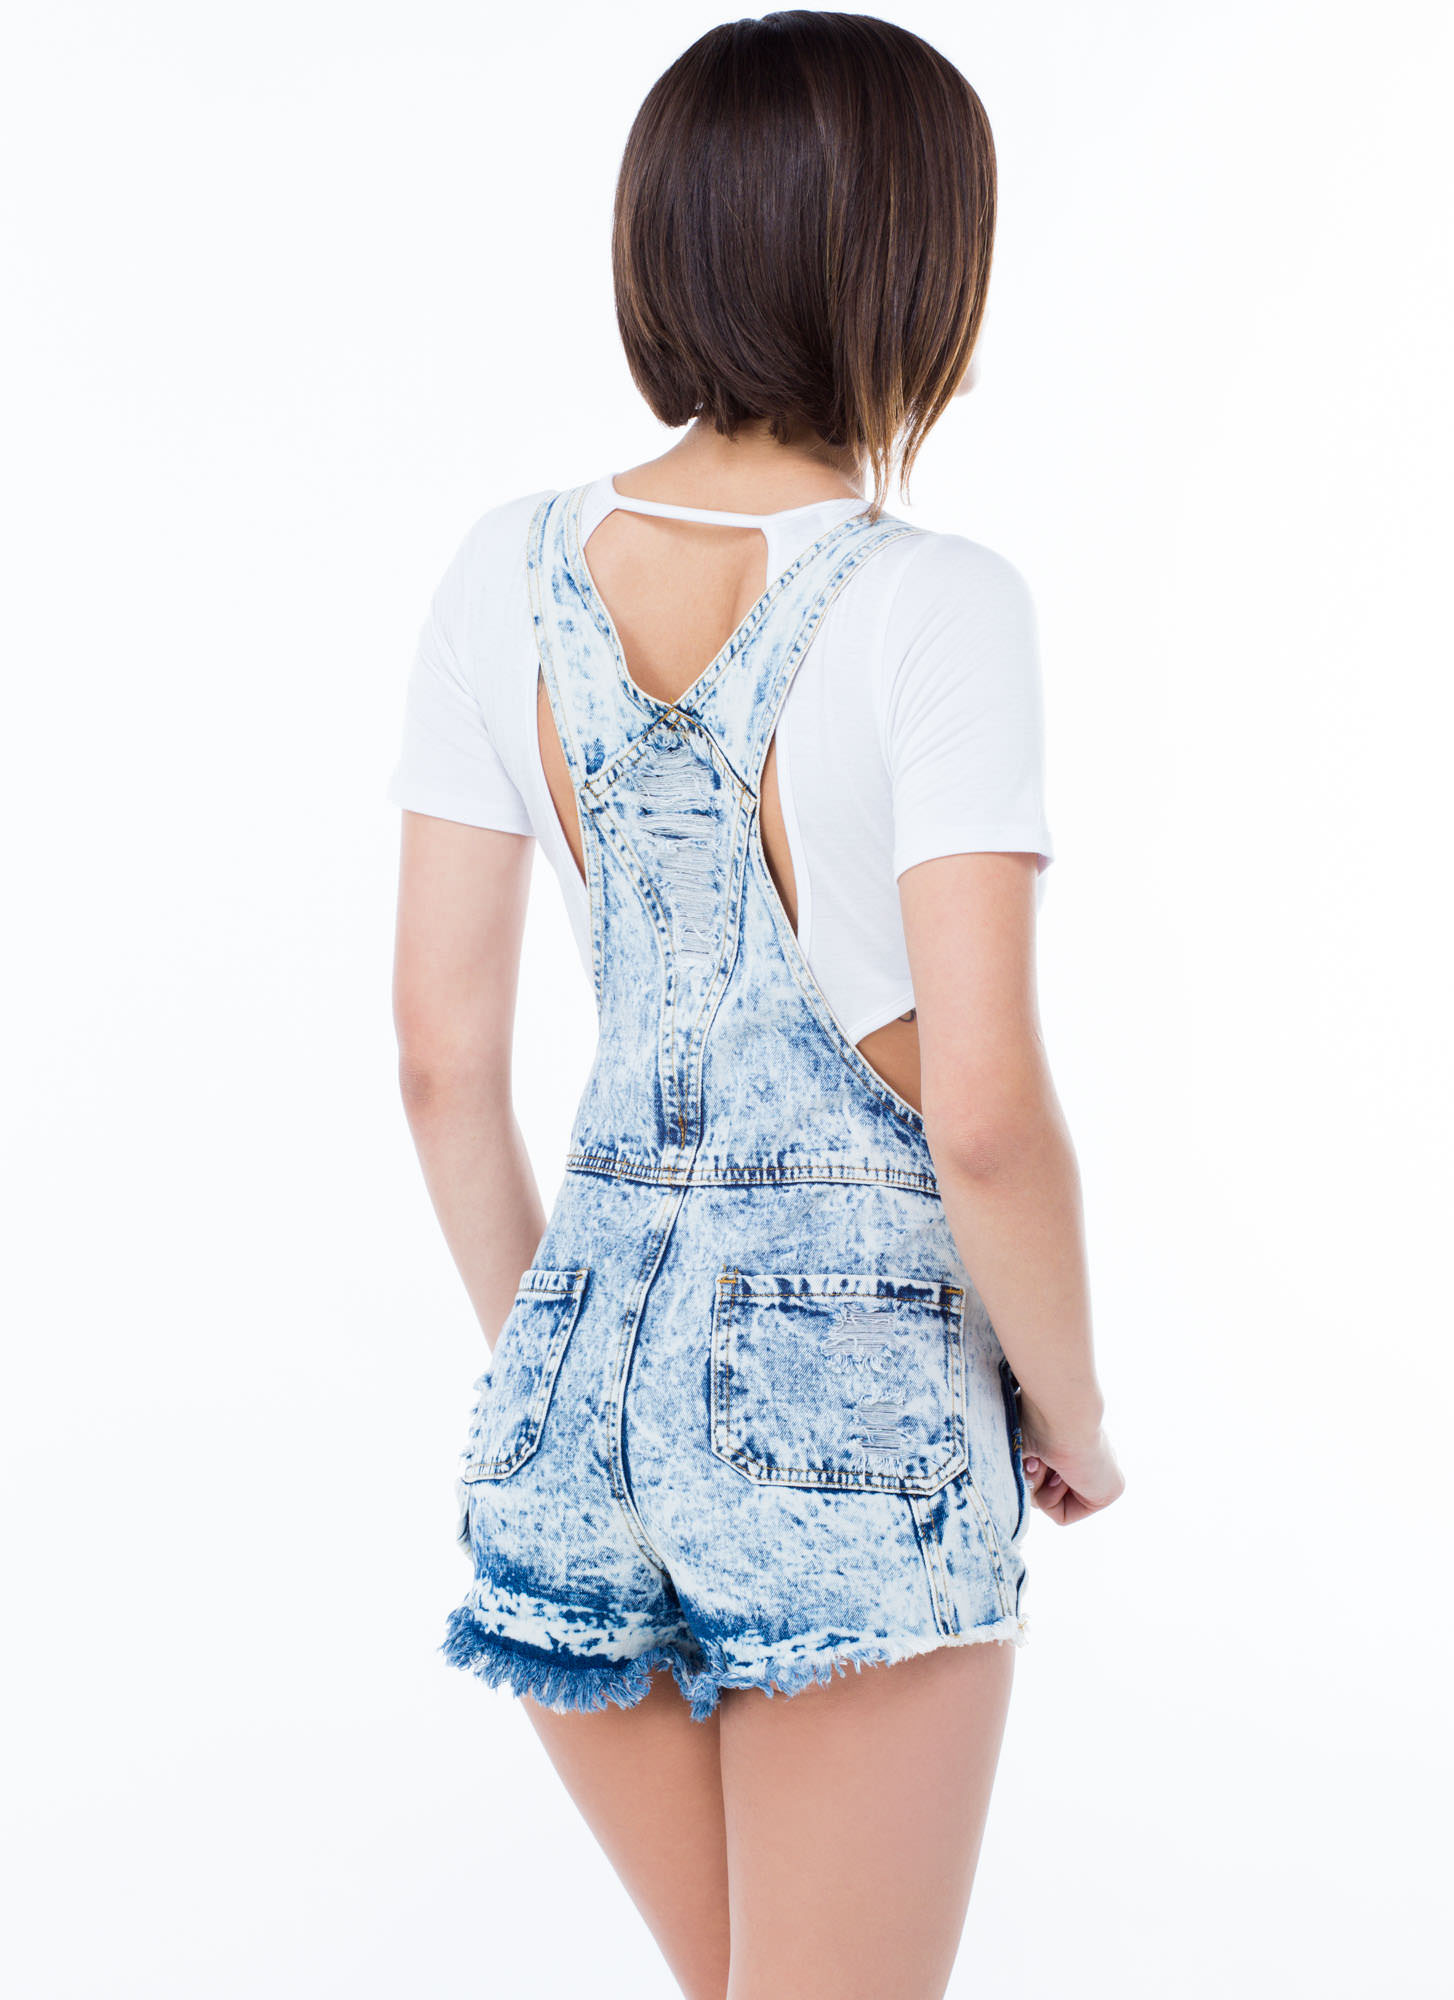 Destruction Zone Acid Wash Shortalls LTBLUE